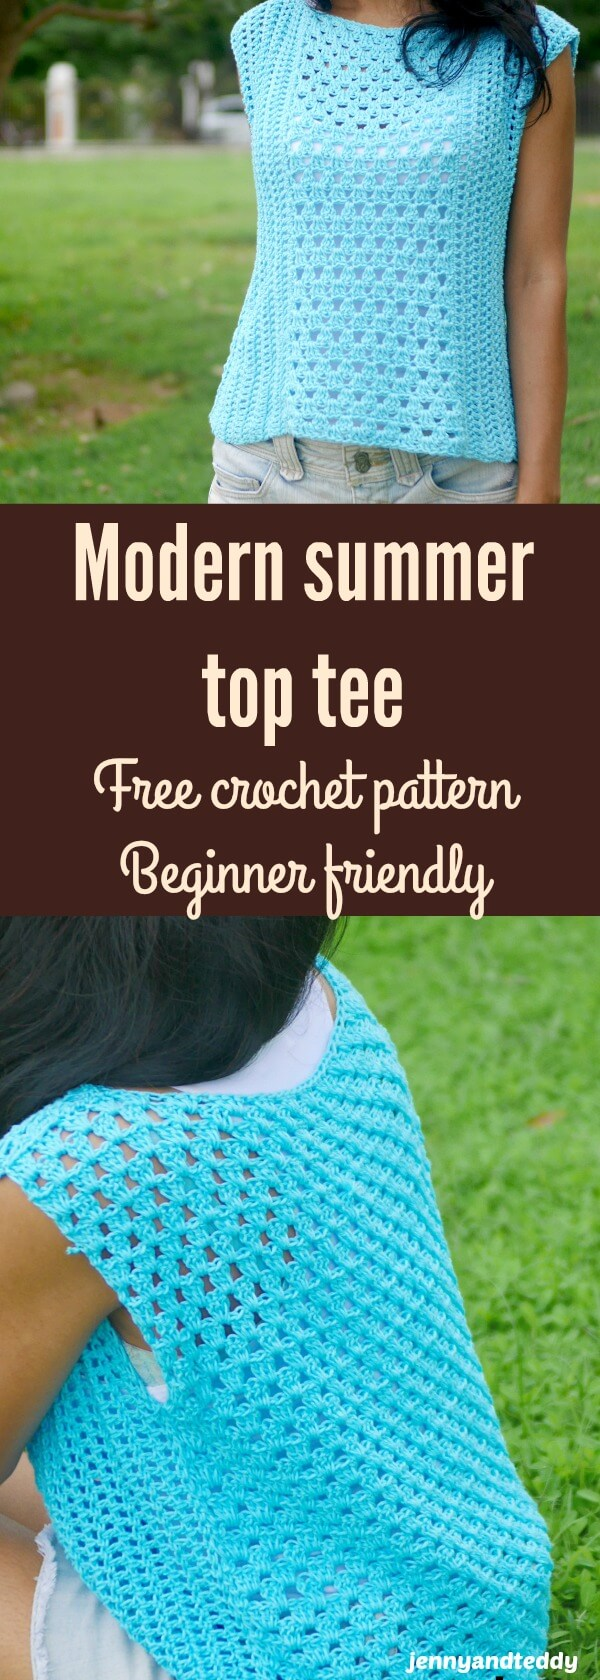 modern cotton summer top tee free crochet pattern beginner friendly by jennyandteddy